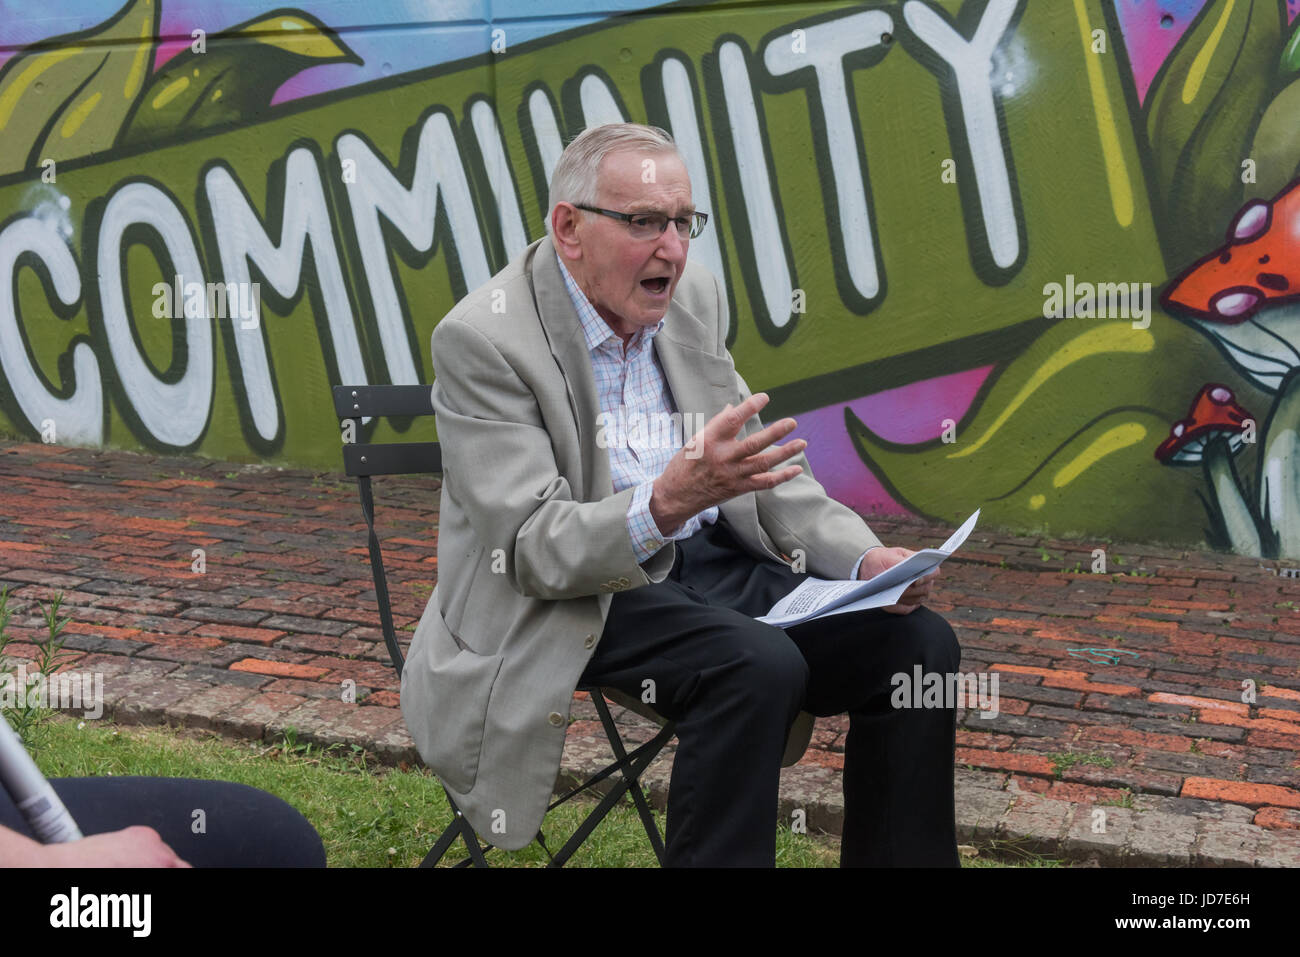 June 18, 2017 - London, UK - London, UK. 18th June 2017. Ted Knight, former leader of Lambeth Council, spoke in - Stock Image